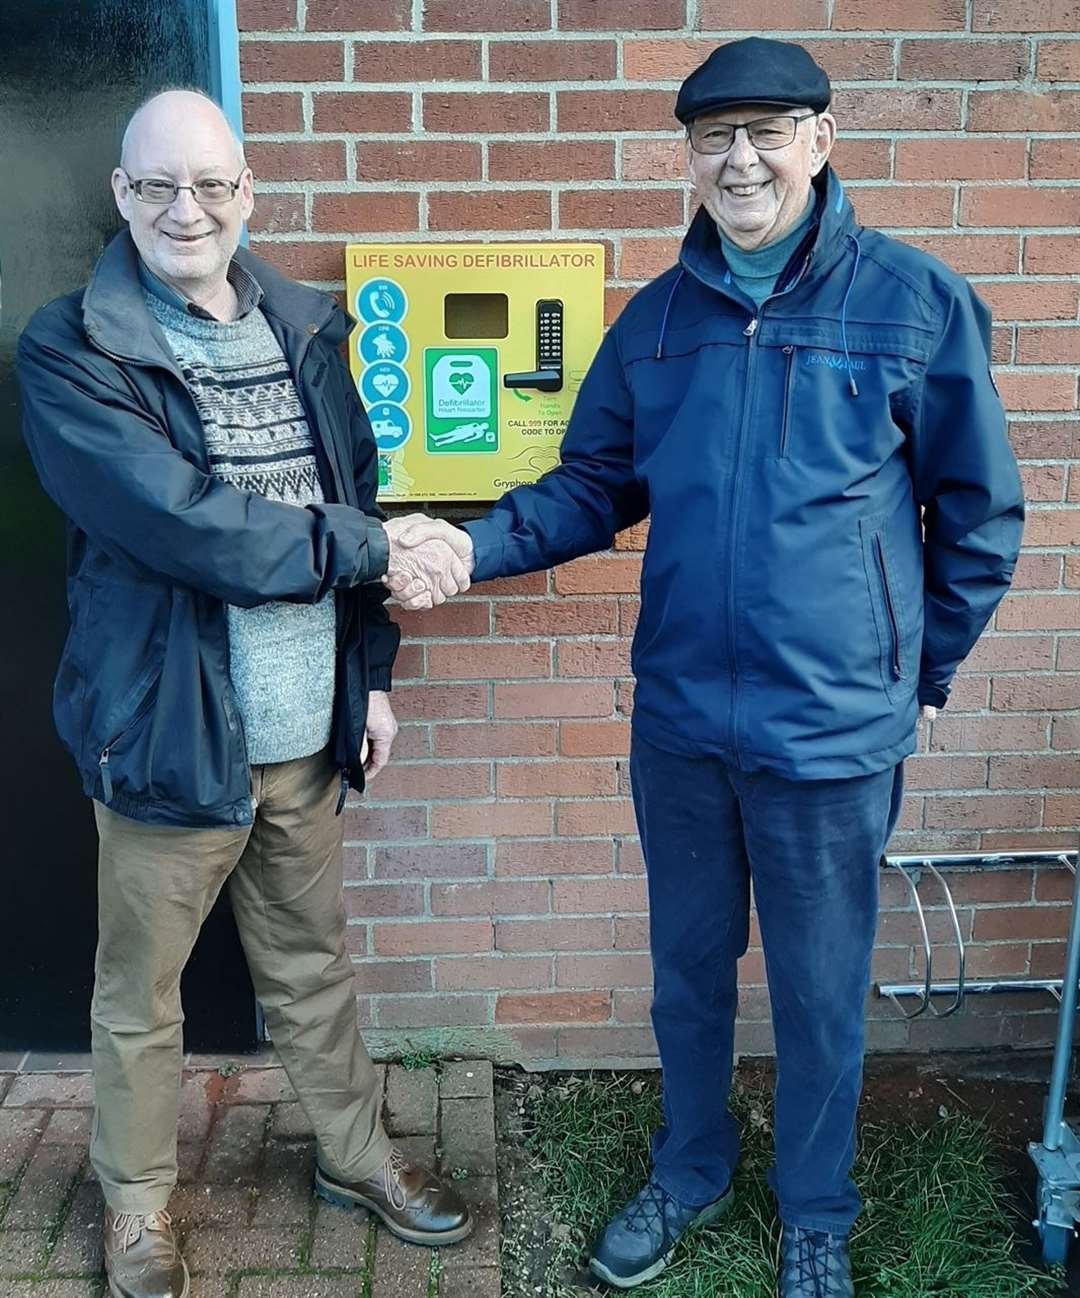 Long Melford Parish Council chairman John Nunn and local resident Robin Hughes at the new defibrillator in Cordell Road. Picture: Contributed. (25824537)